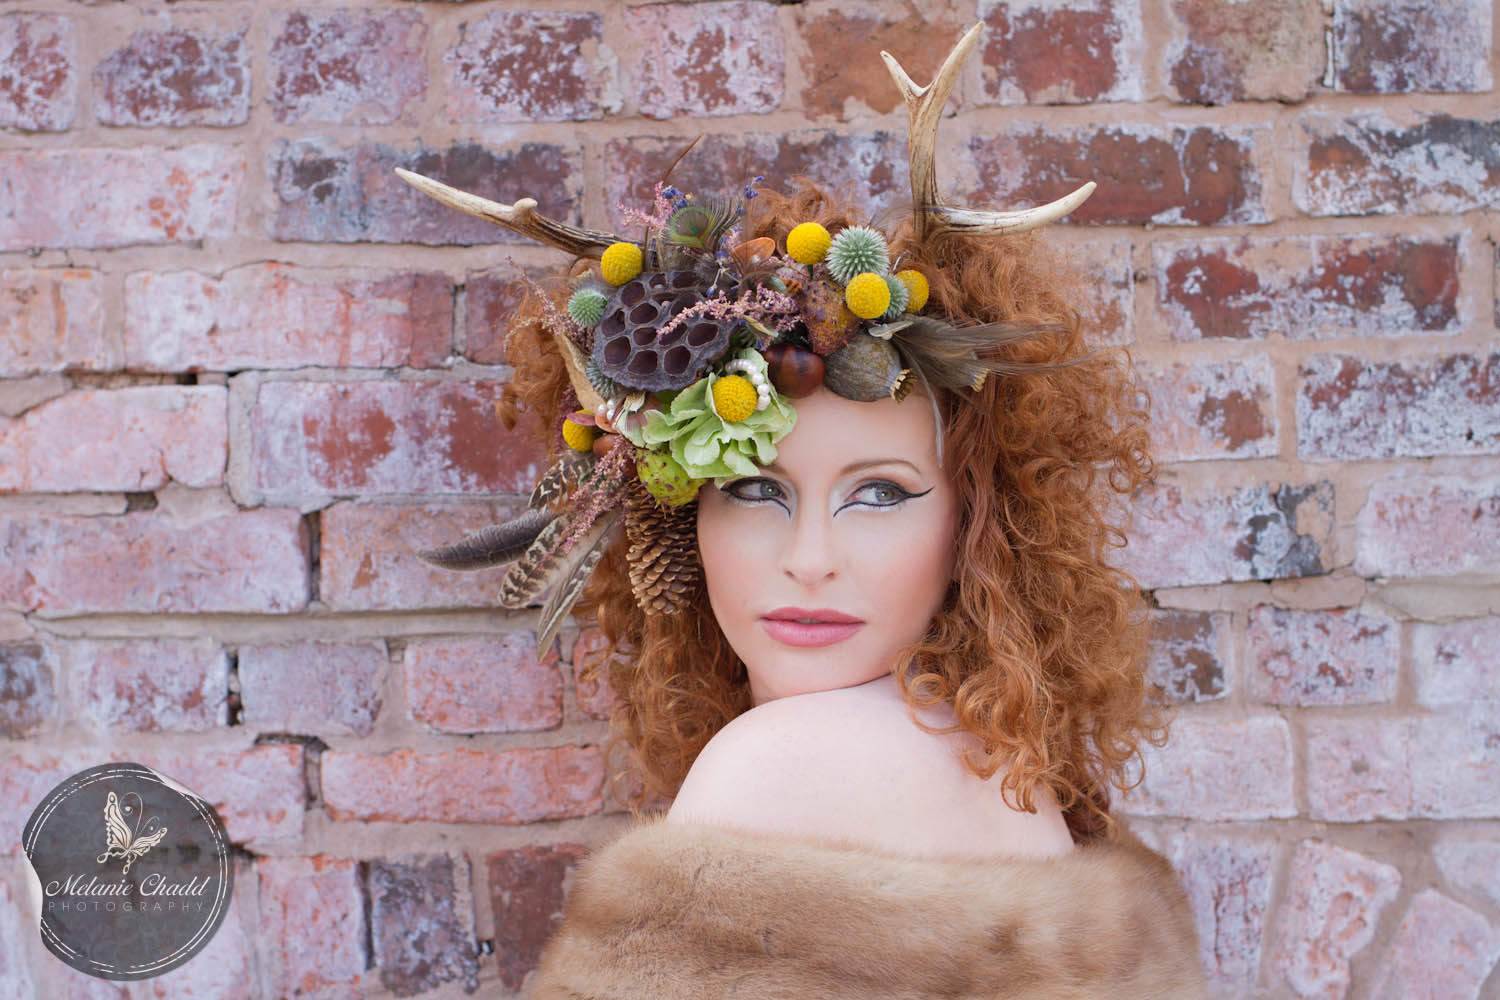 Model wearing antlers and a floral head dress